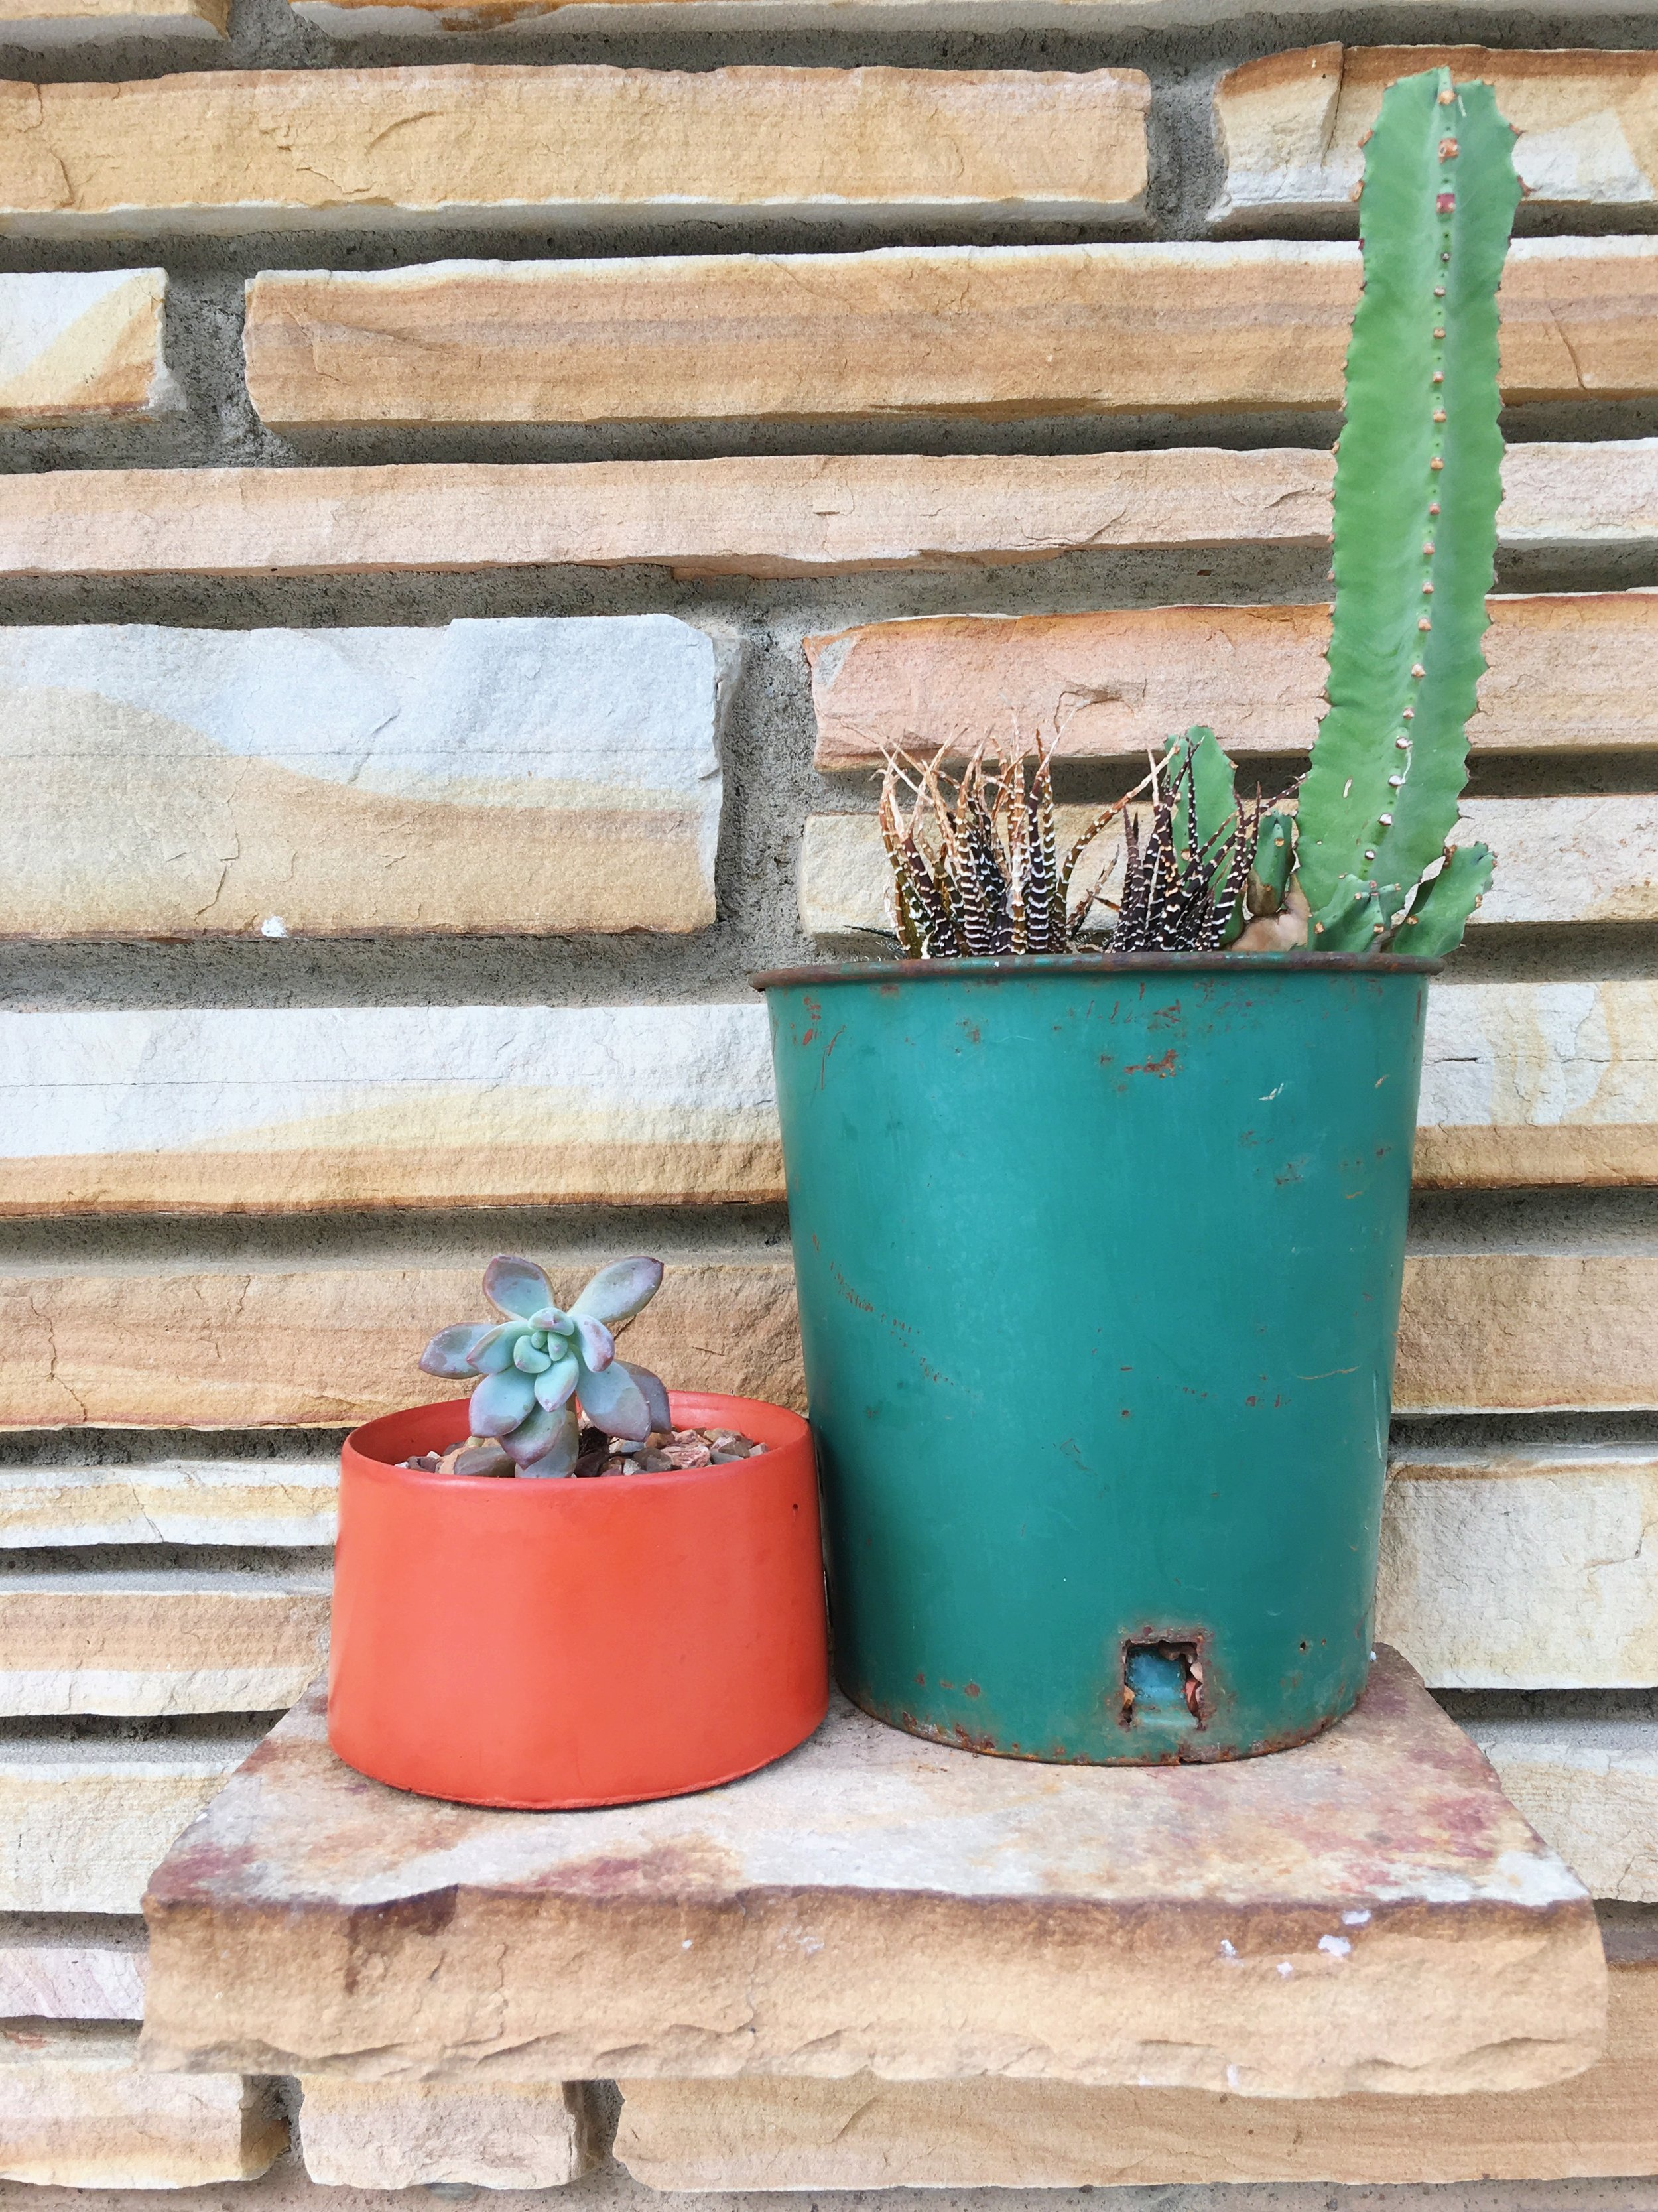 Palmer propagated a wee succulent this week and placed it in a Makerage concrete planter (which we carry in the shop!).